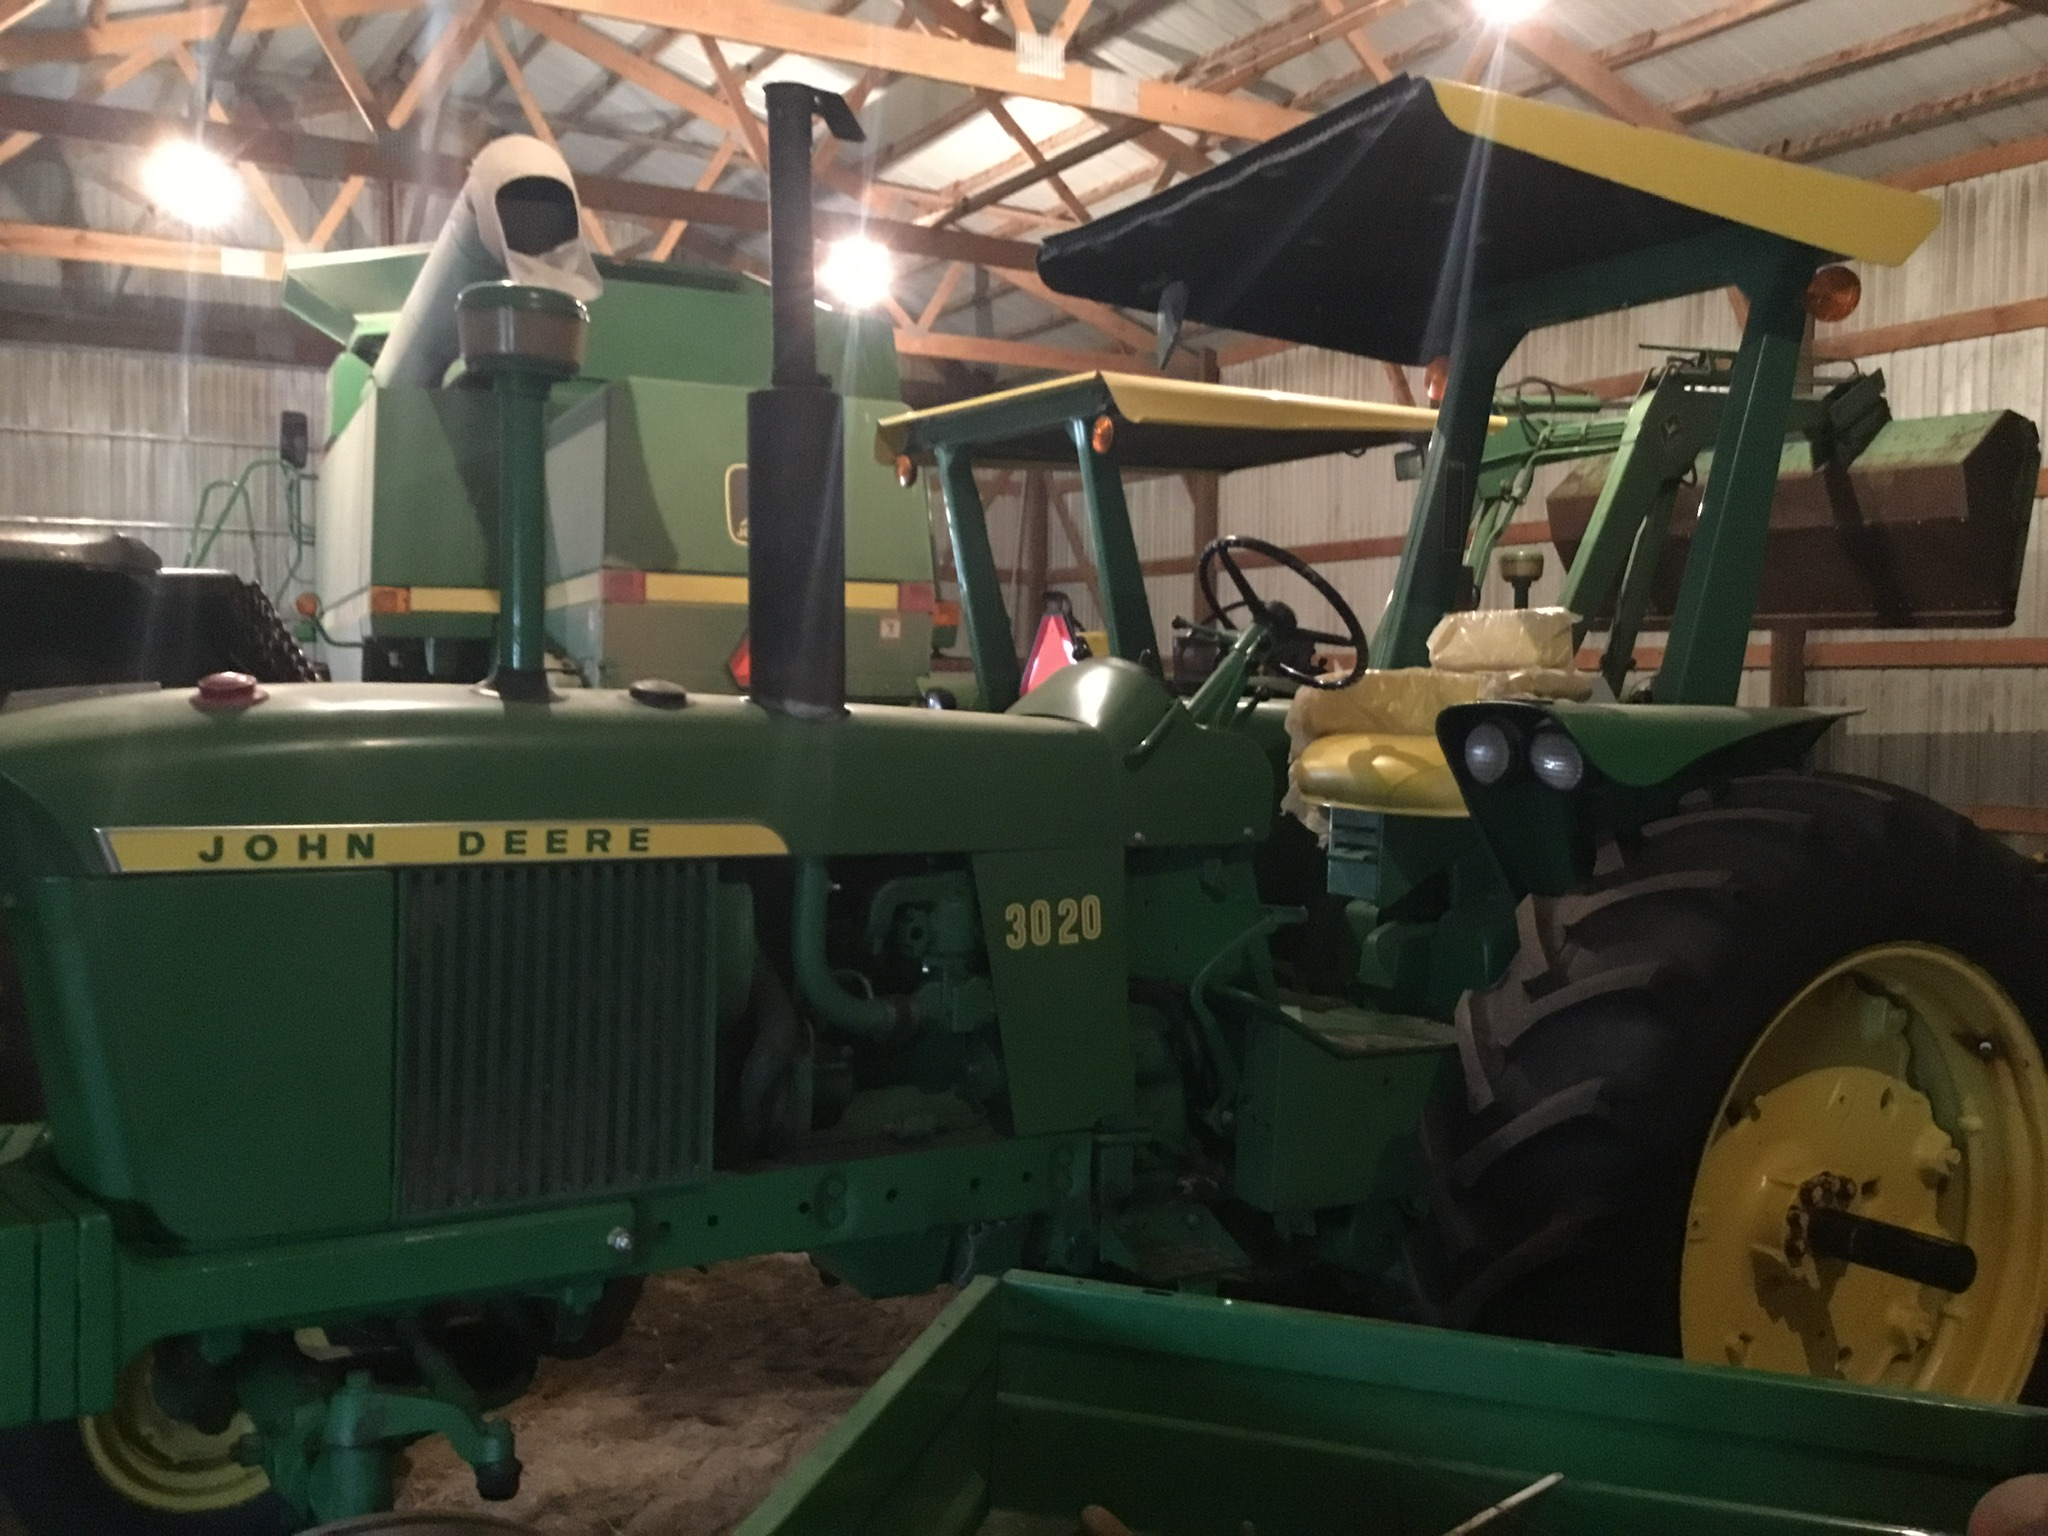 1966 John Deere 3020 Gas, JD Wide Front, Synchro Range, Roll Bar & Canopy, Dual Hydraulic Remotes, - Image 3 of 13